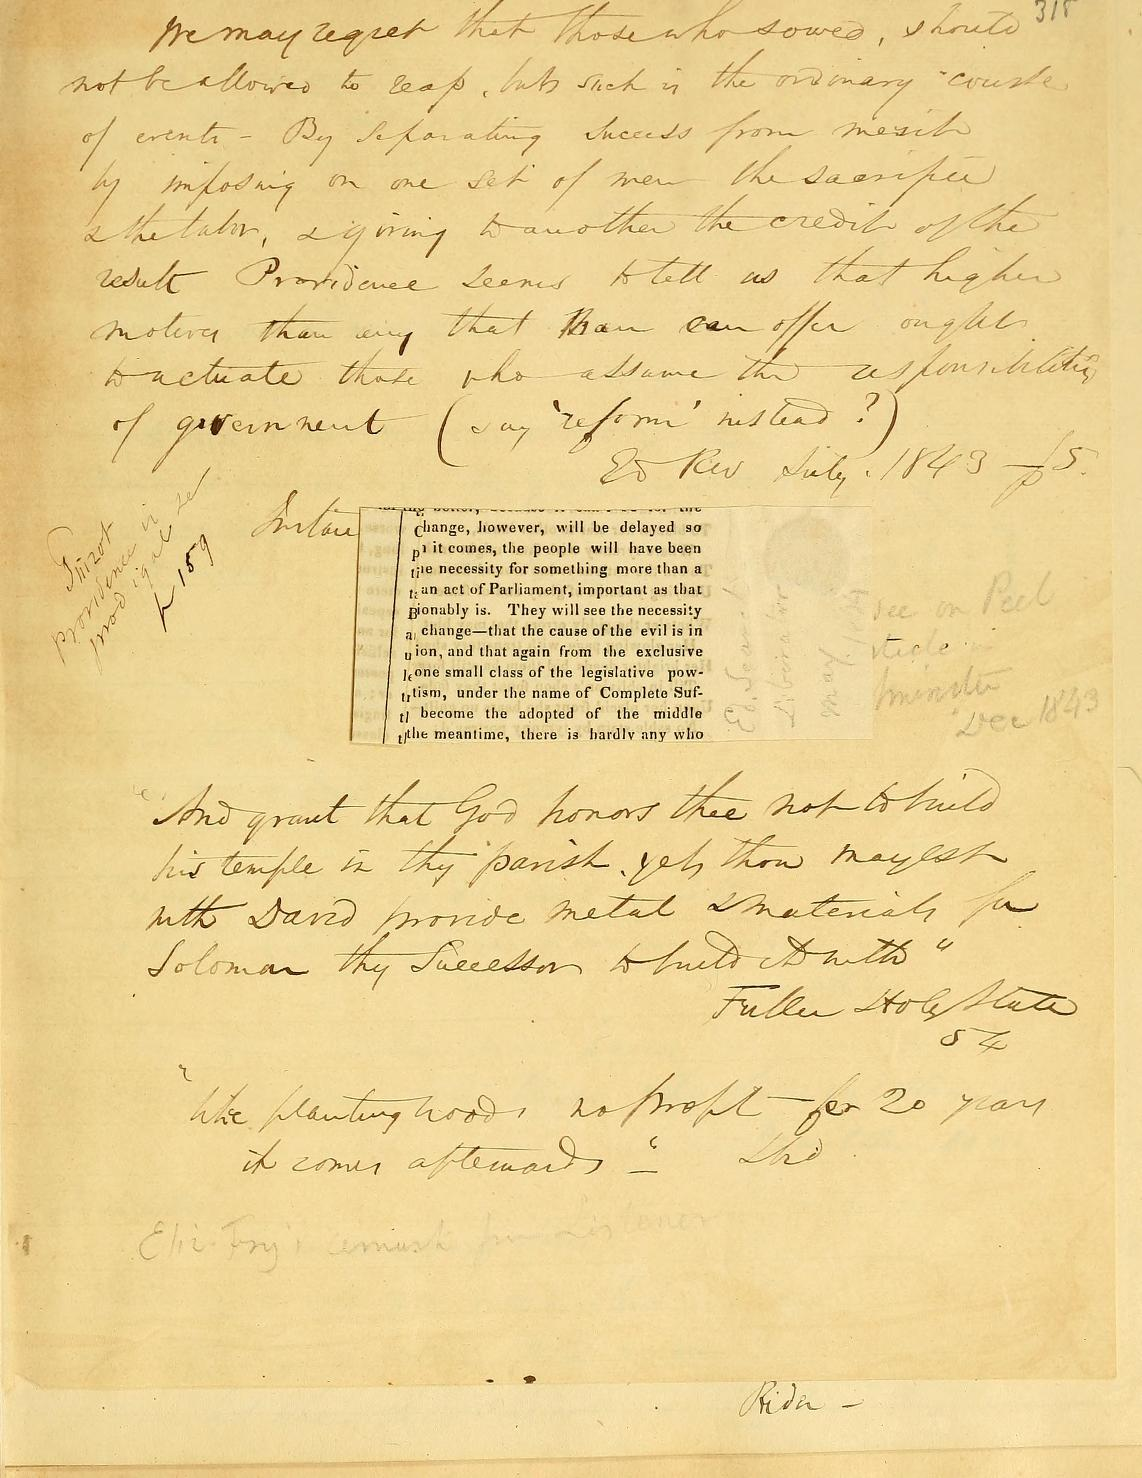 Sample page from the Commonplace Book of Wendell Phillips